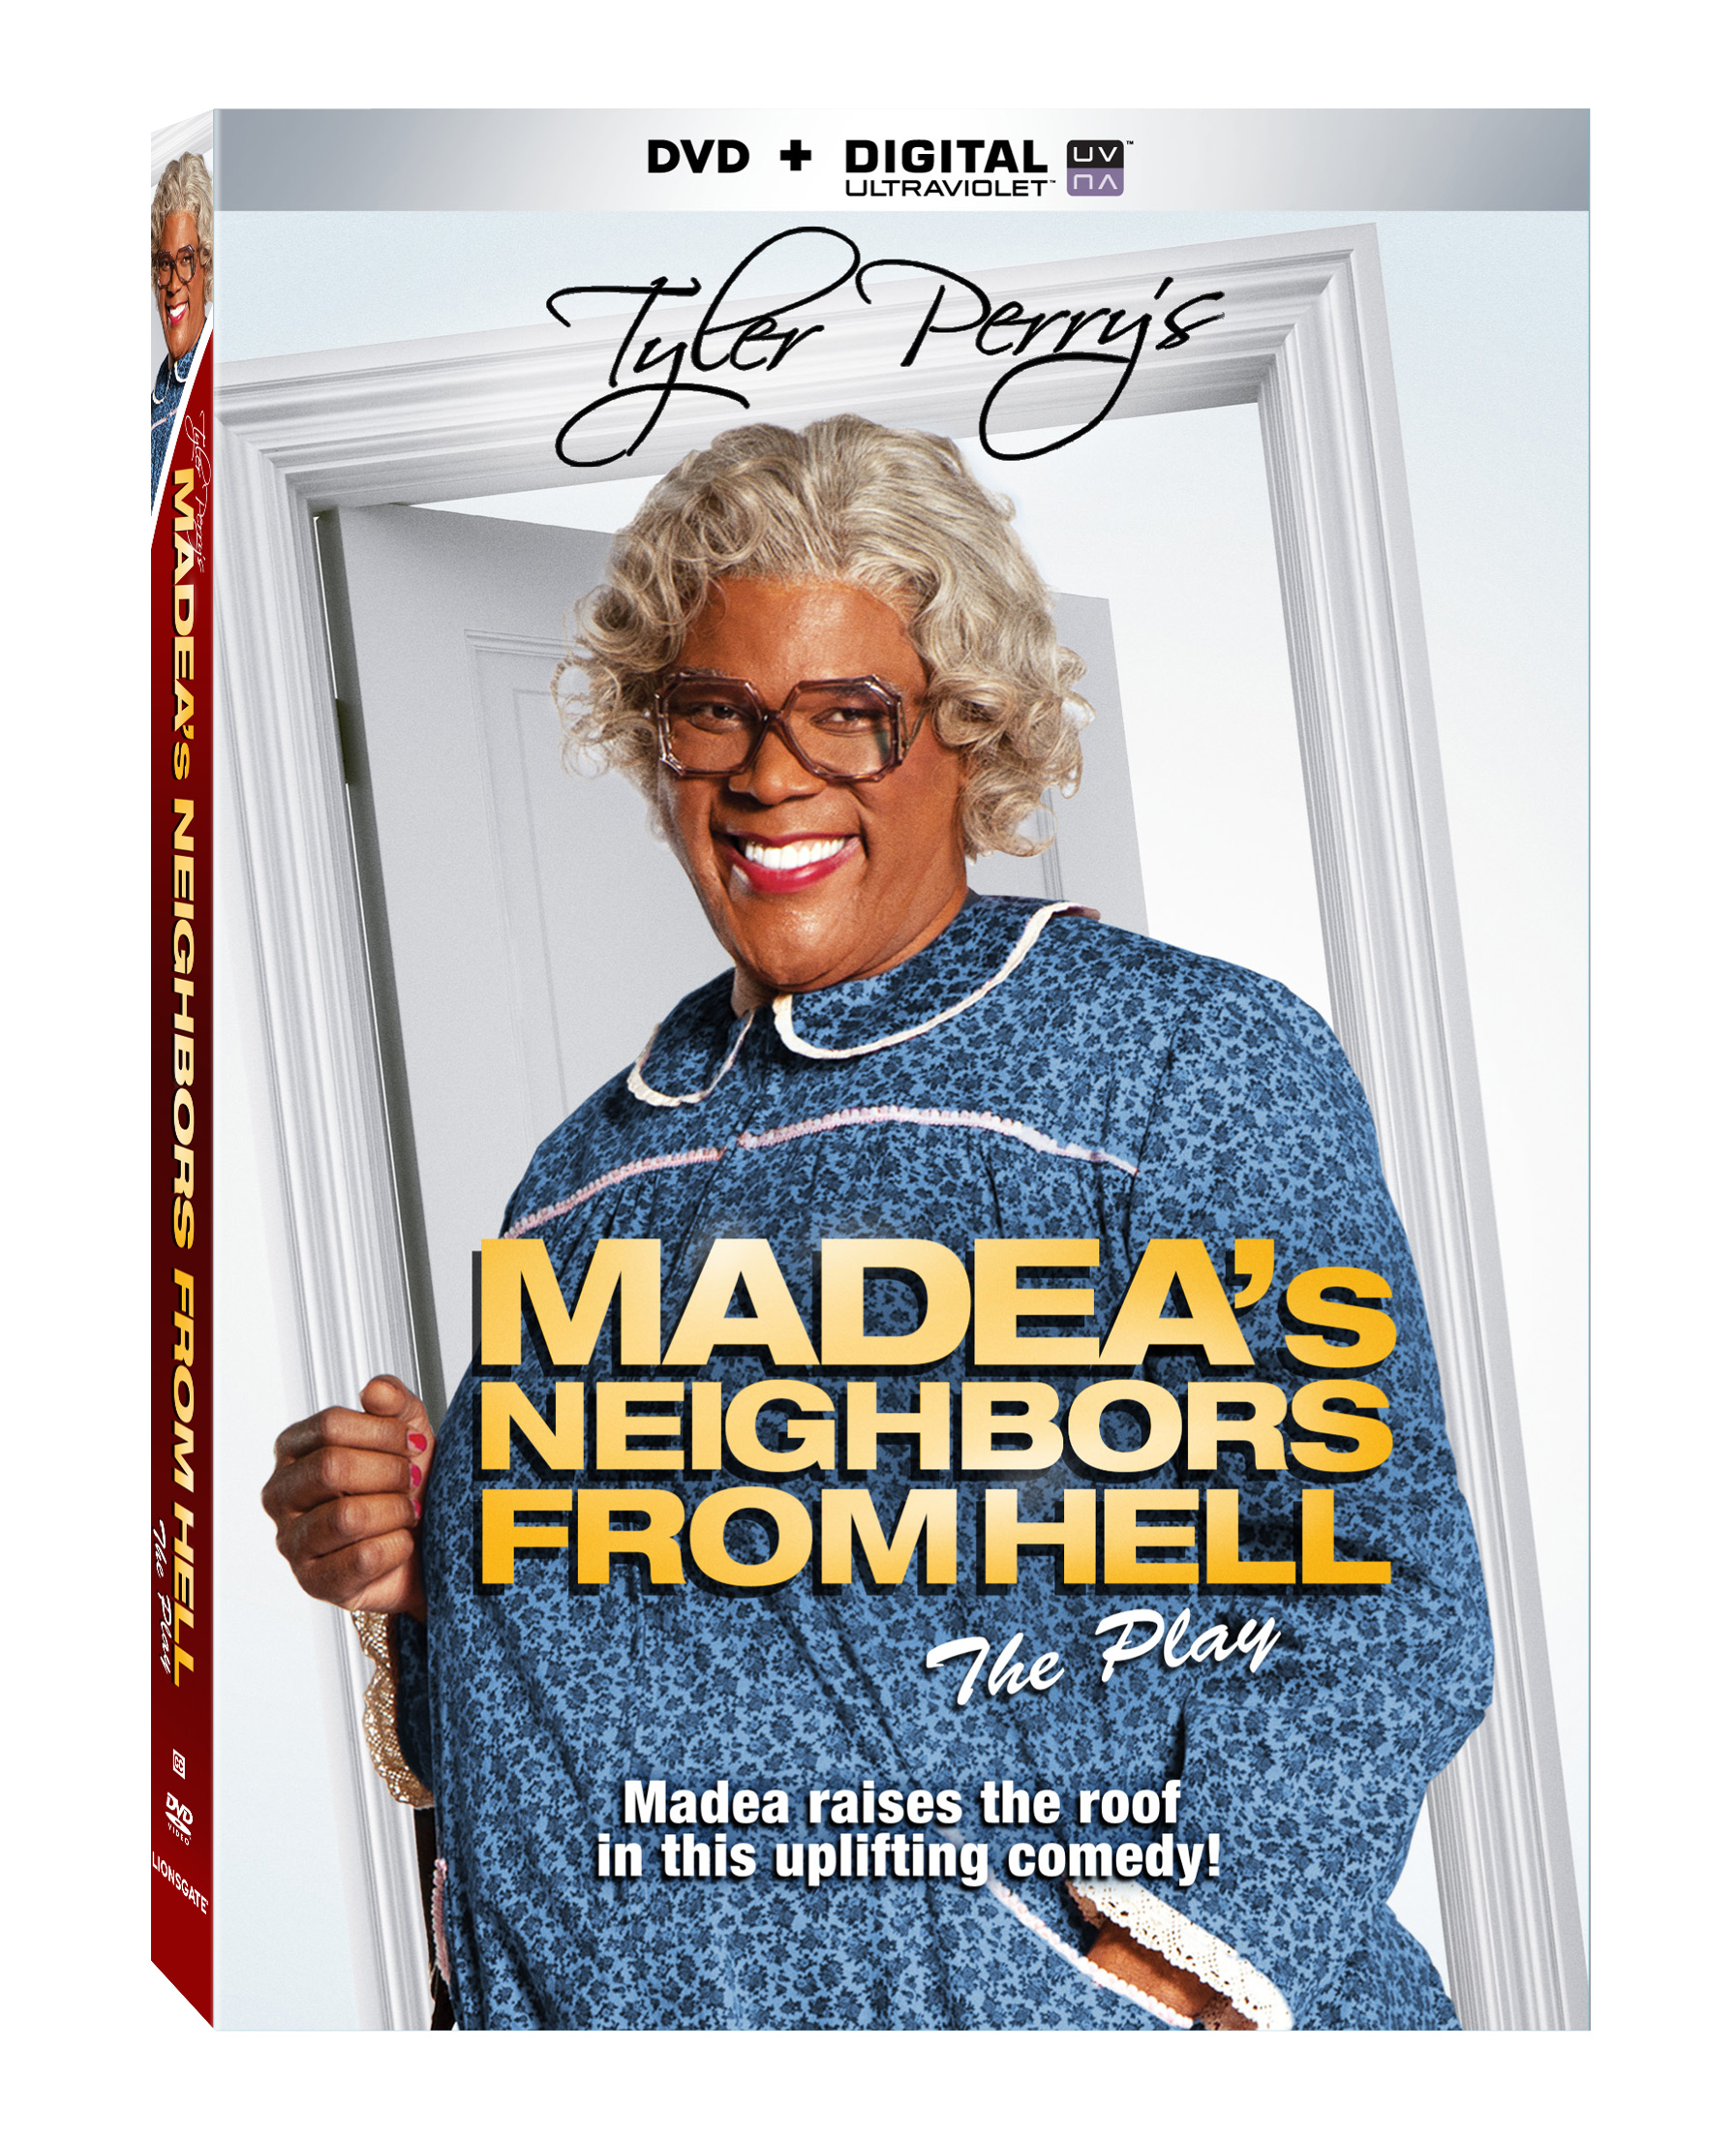 BWW DVD Reviews: Tyler Perry's MADEA'S NEIGHBORS FROM HELL Easily Entertains